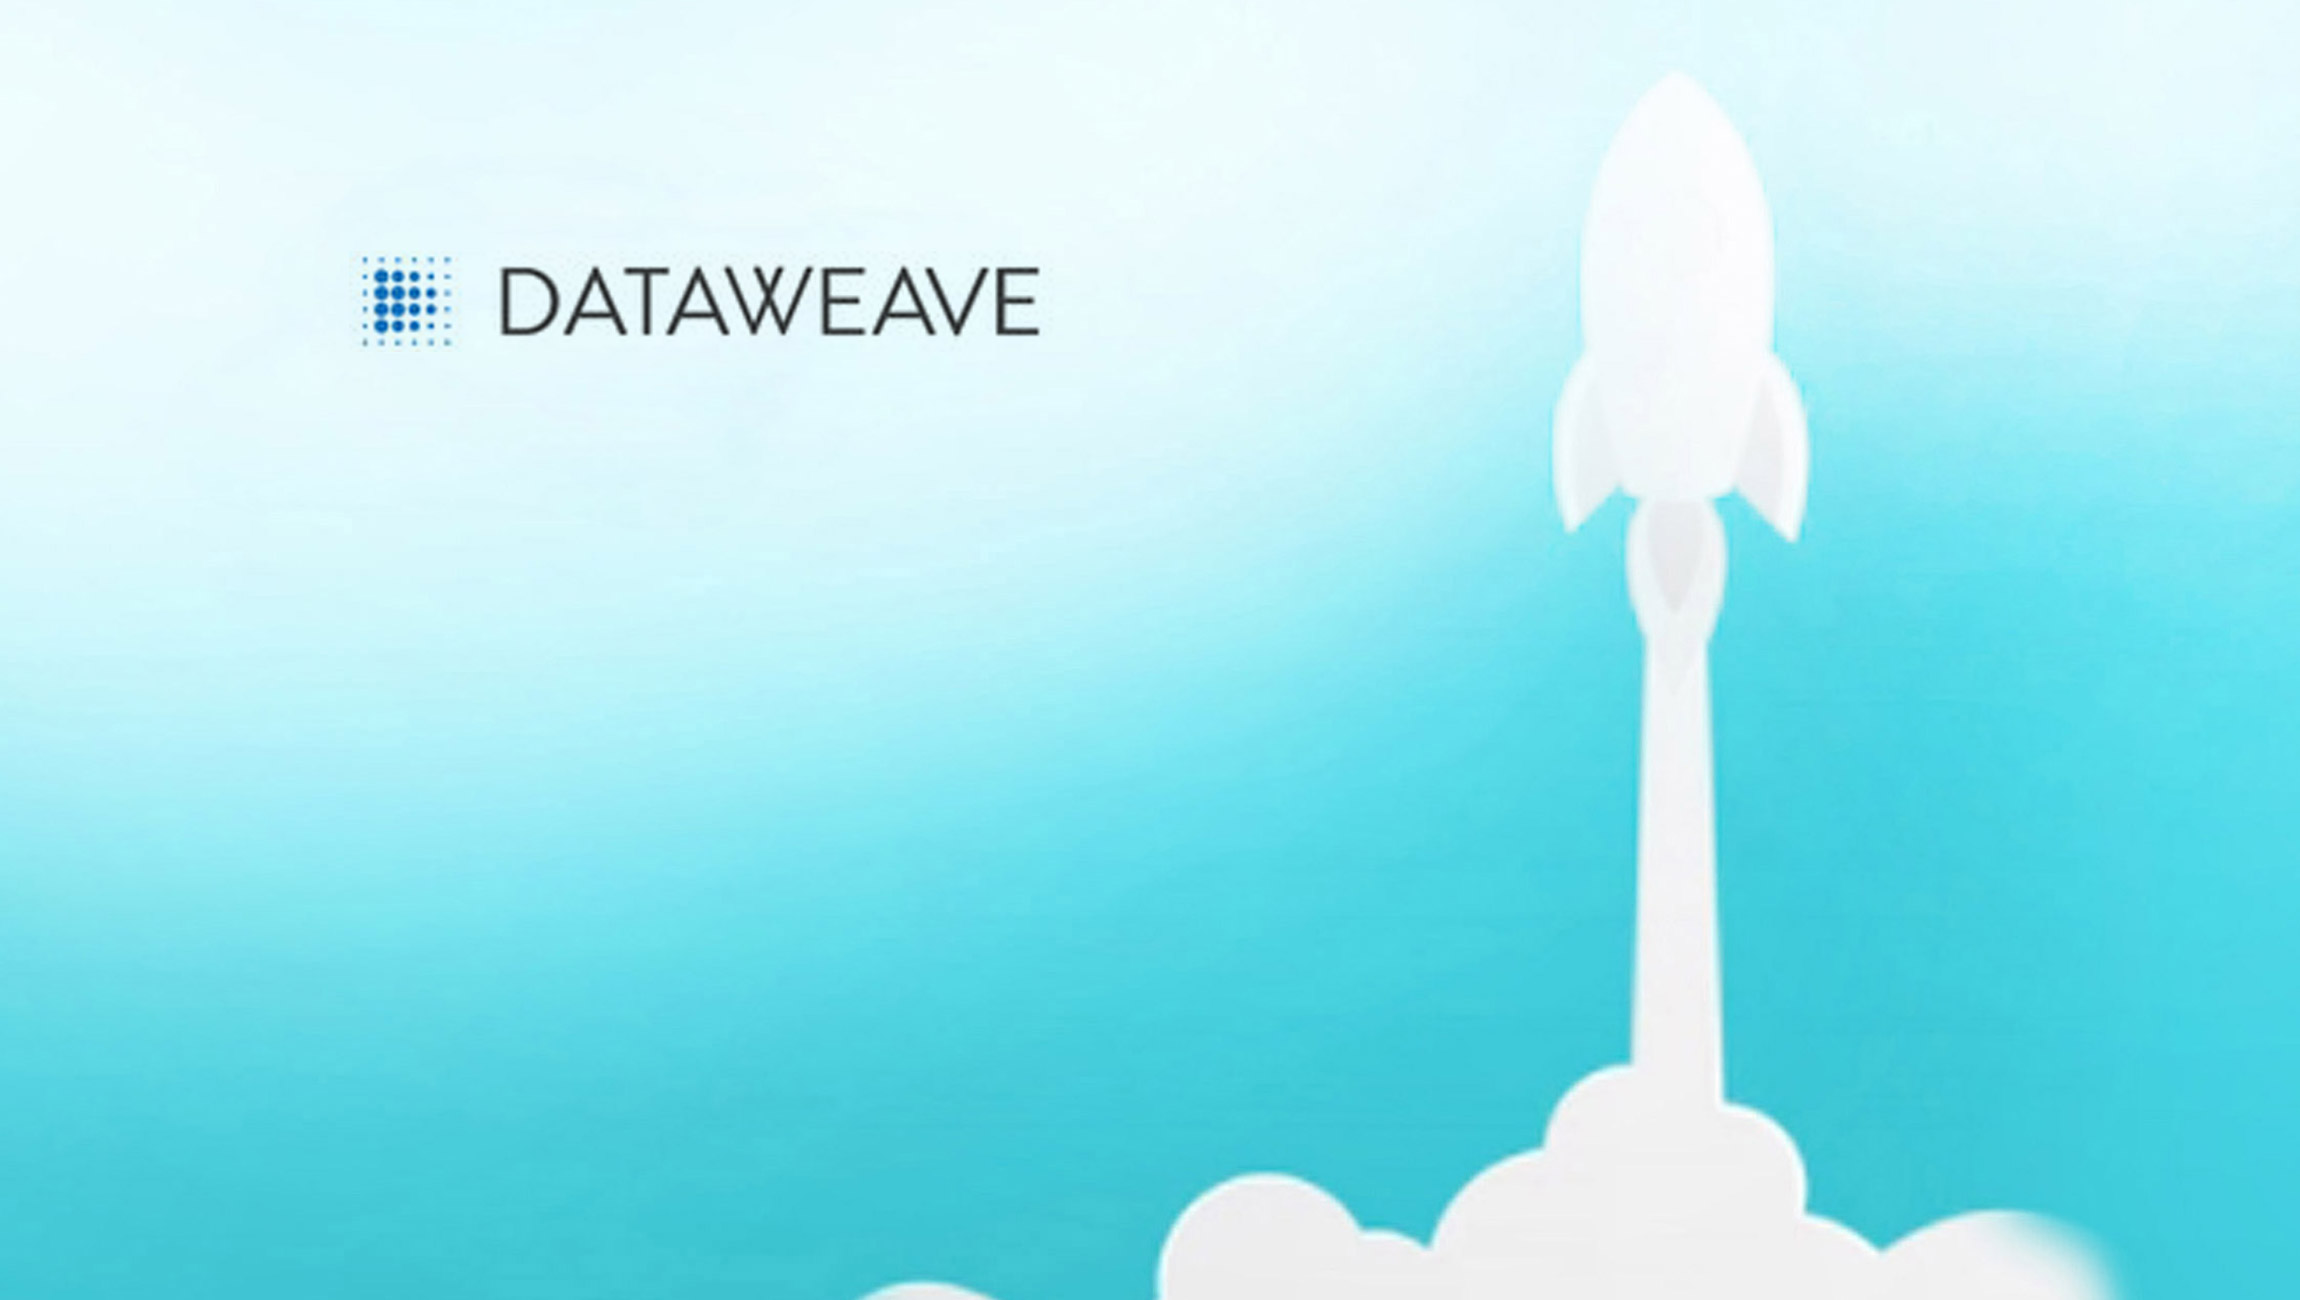 DataWeave-Launches-Sales-_-Market-Share-Module-and-Enhances-the-Digital-Shelf-Analytics-Suite-for-Brands